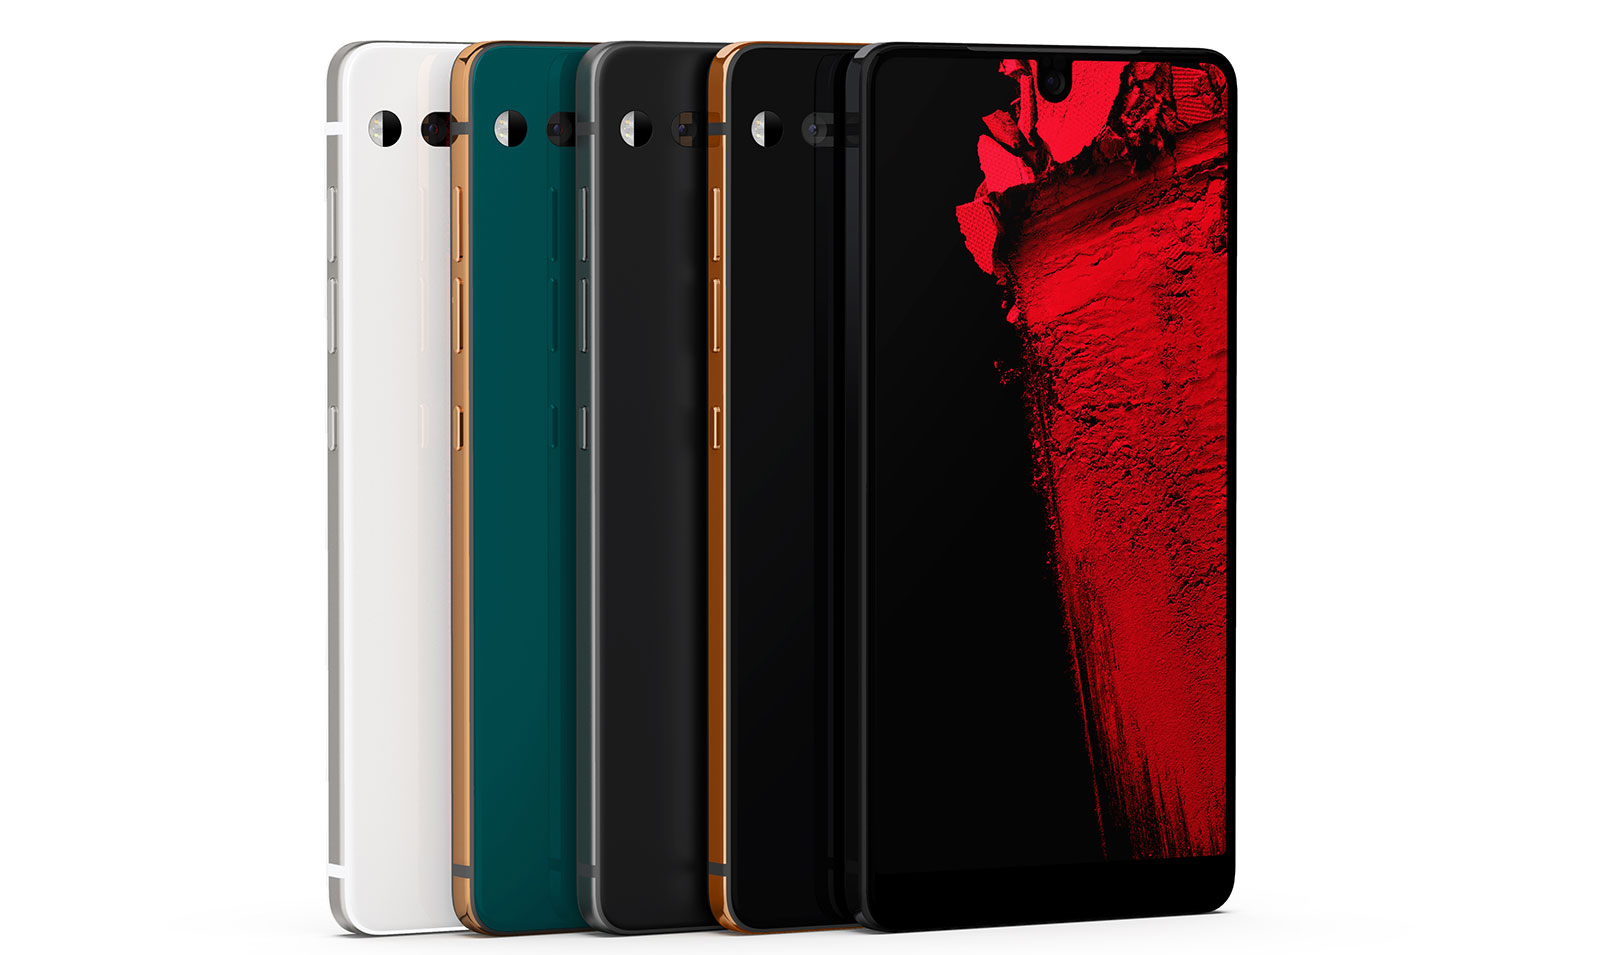 Essential Phone's new colours are gorgeous, but also very limited